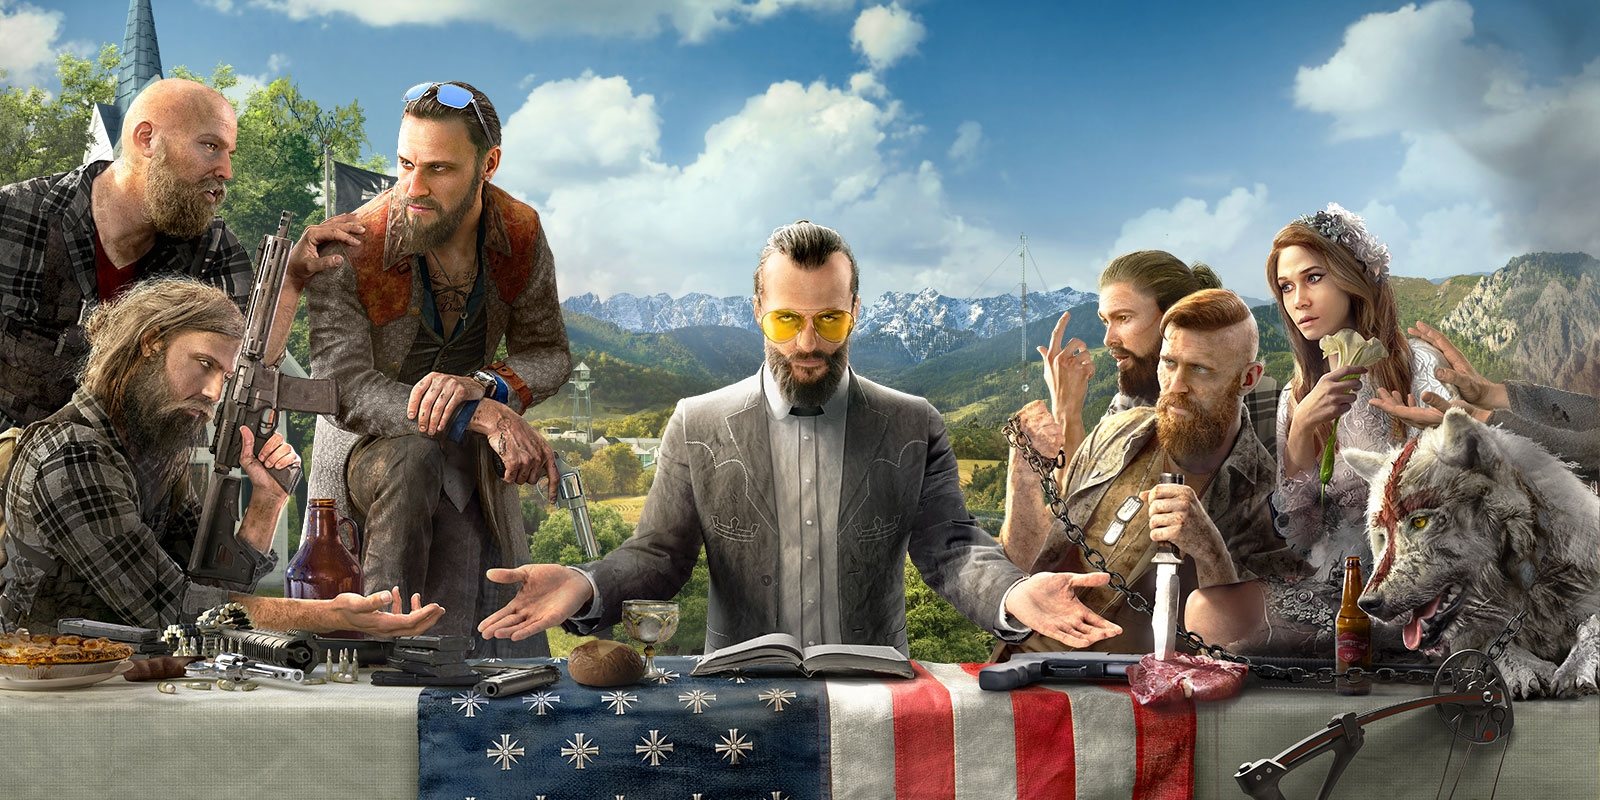 Far Cry 5 receives a host of trailers including character vignettes     With less than a month until its release  Ubisoft has been ramping up its  promotion of Far Cry 5  Set in the fictional location of Hope County   Montana